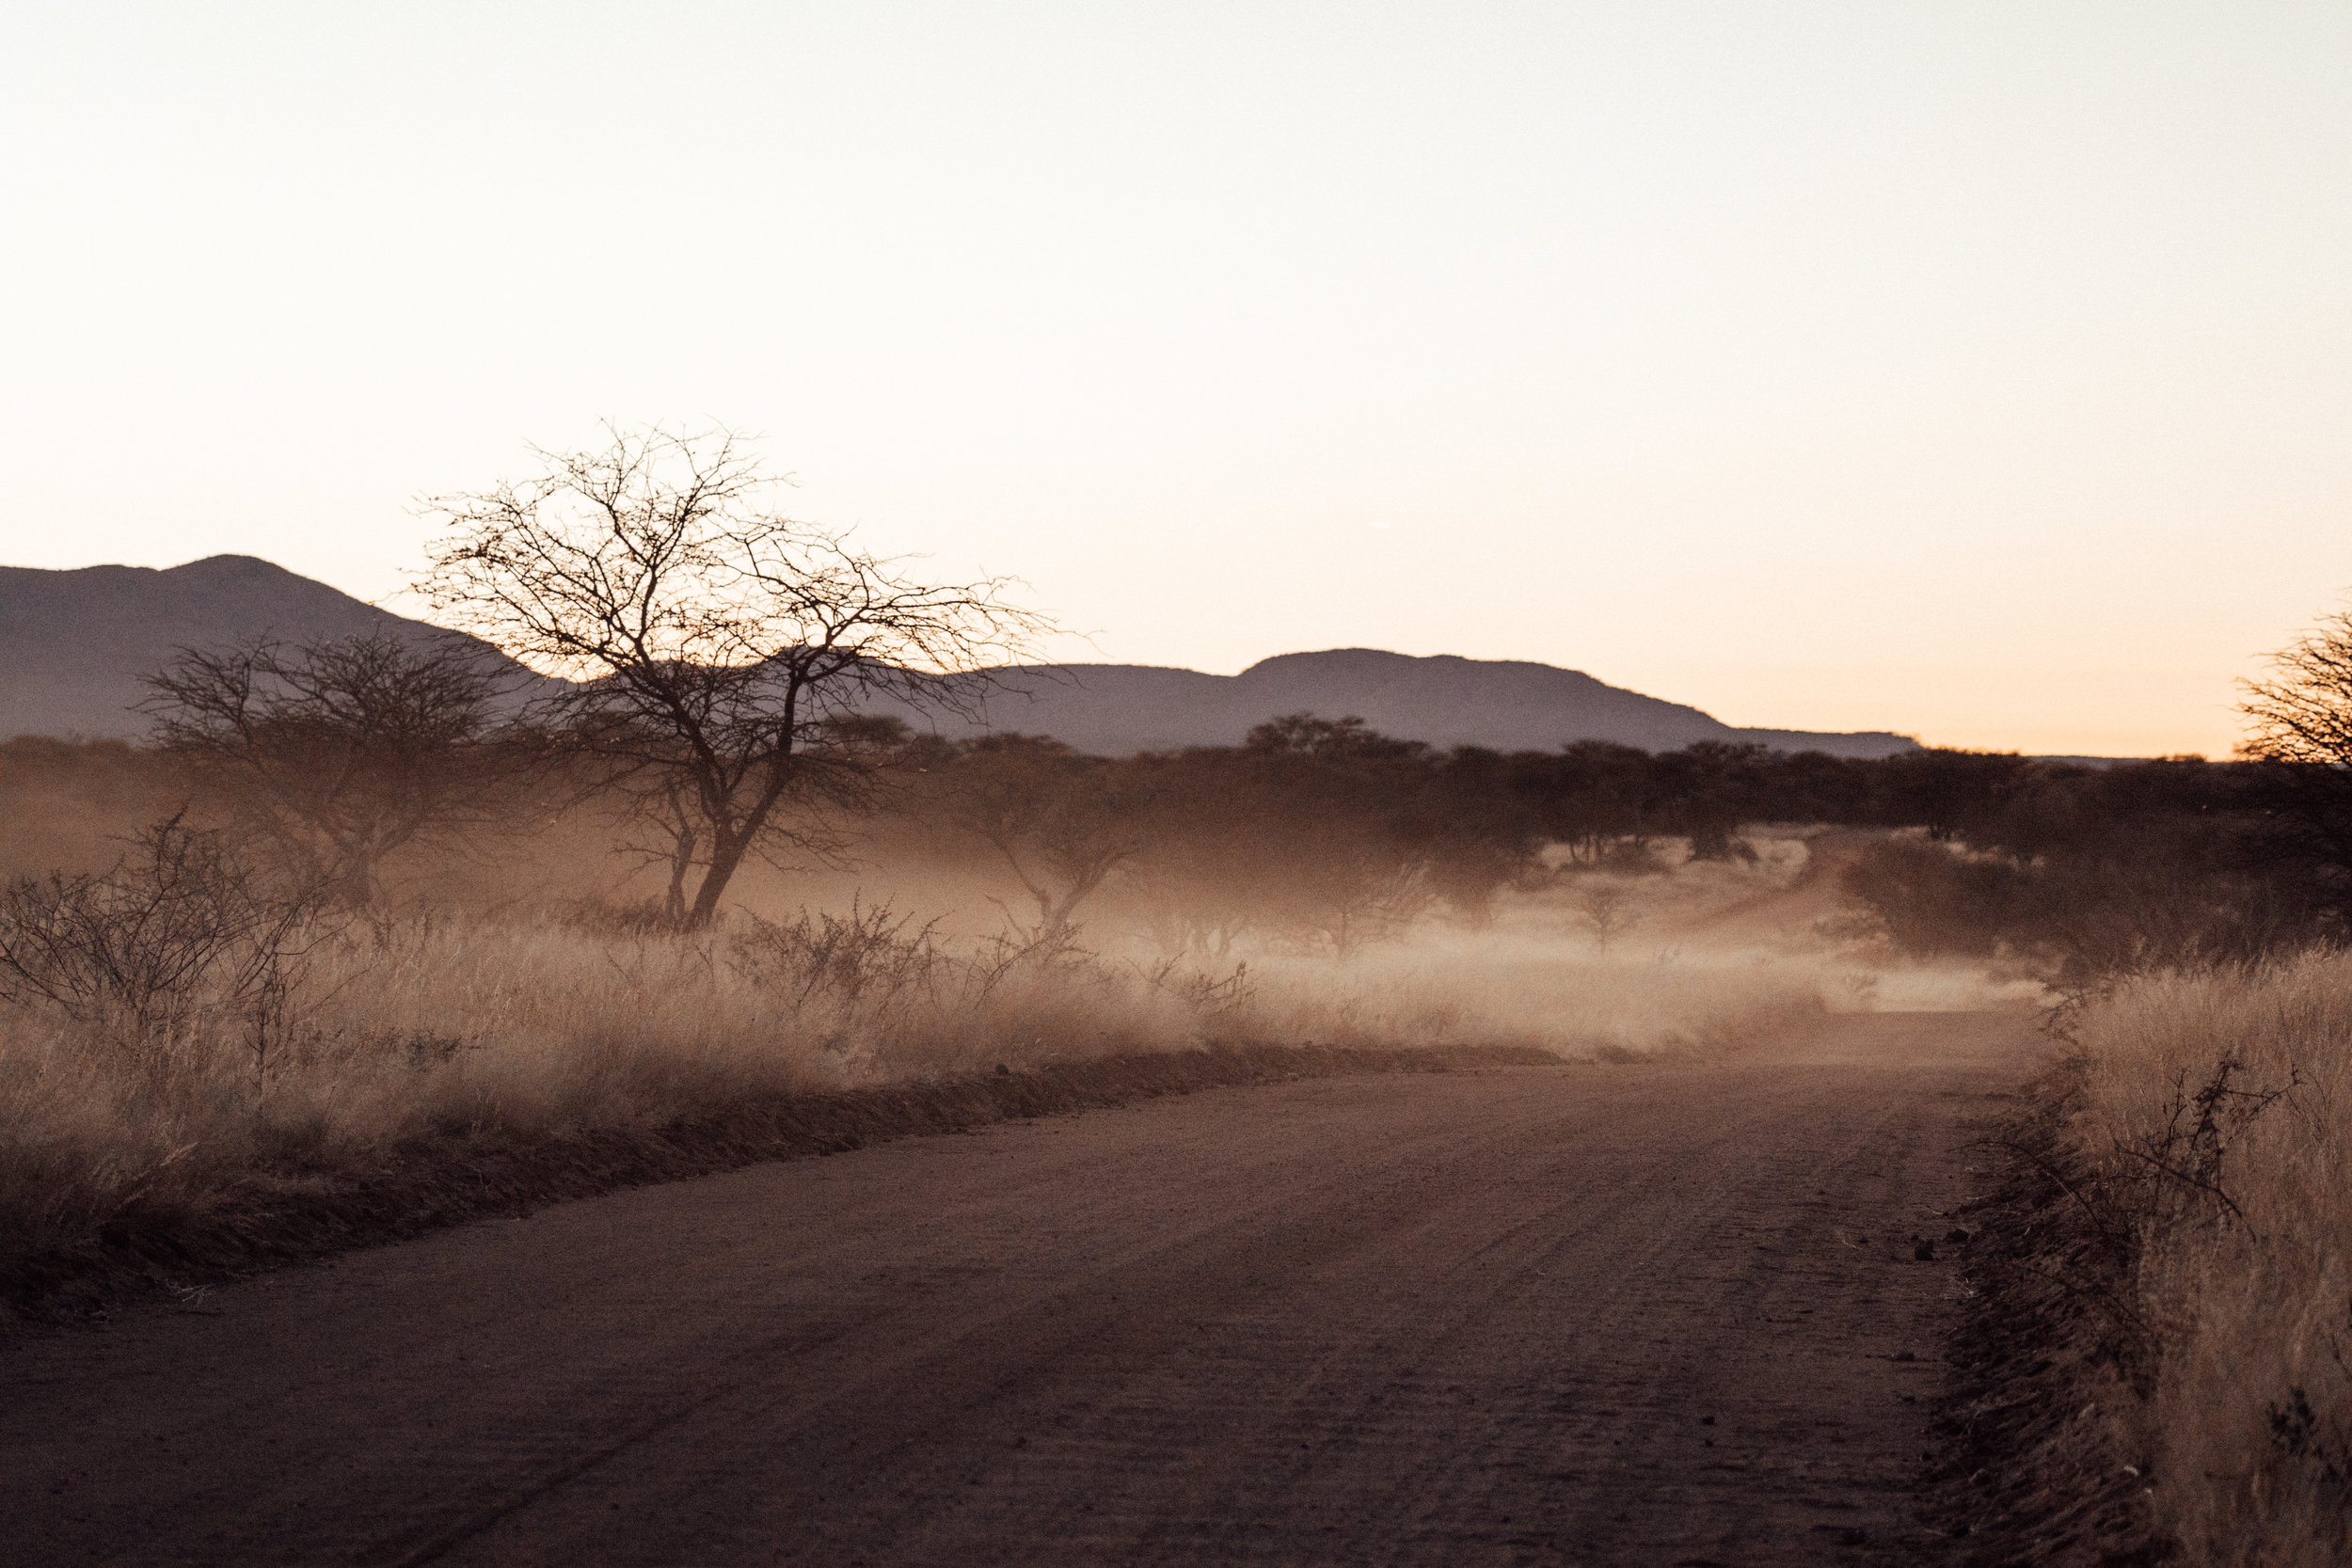 The view from the back of the car as we search for Honey before dawn